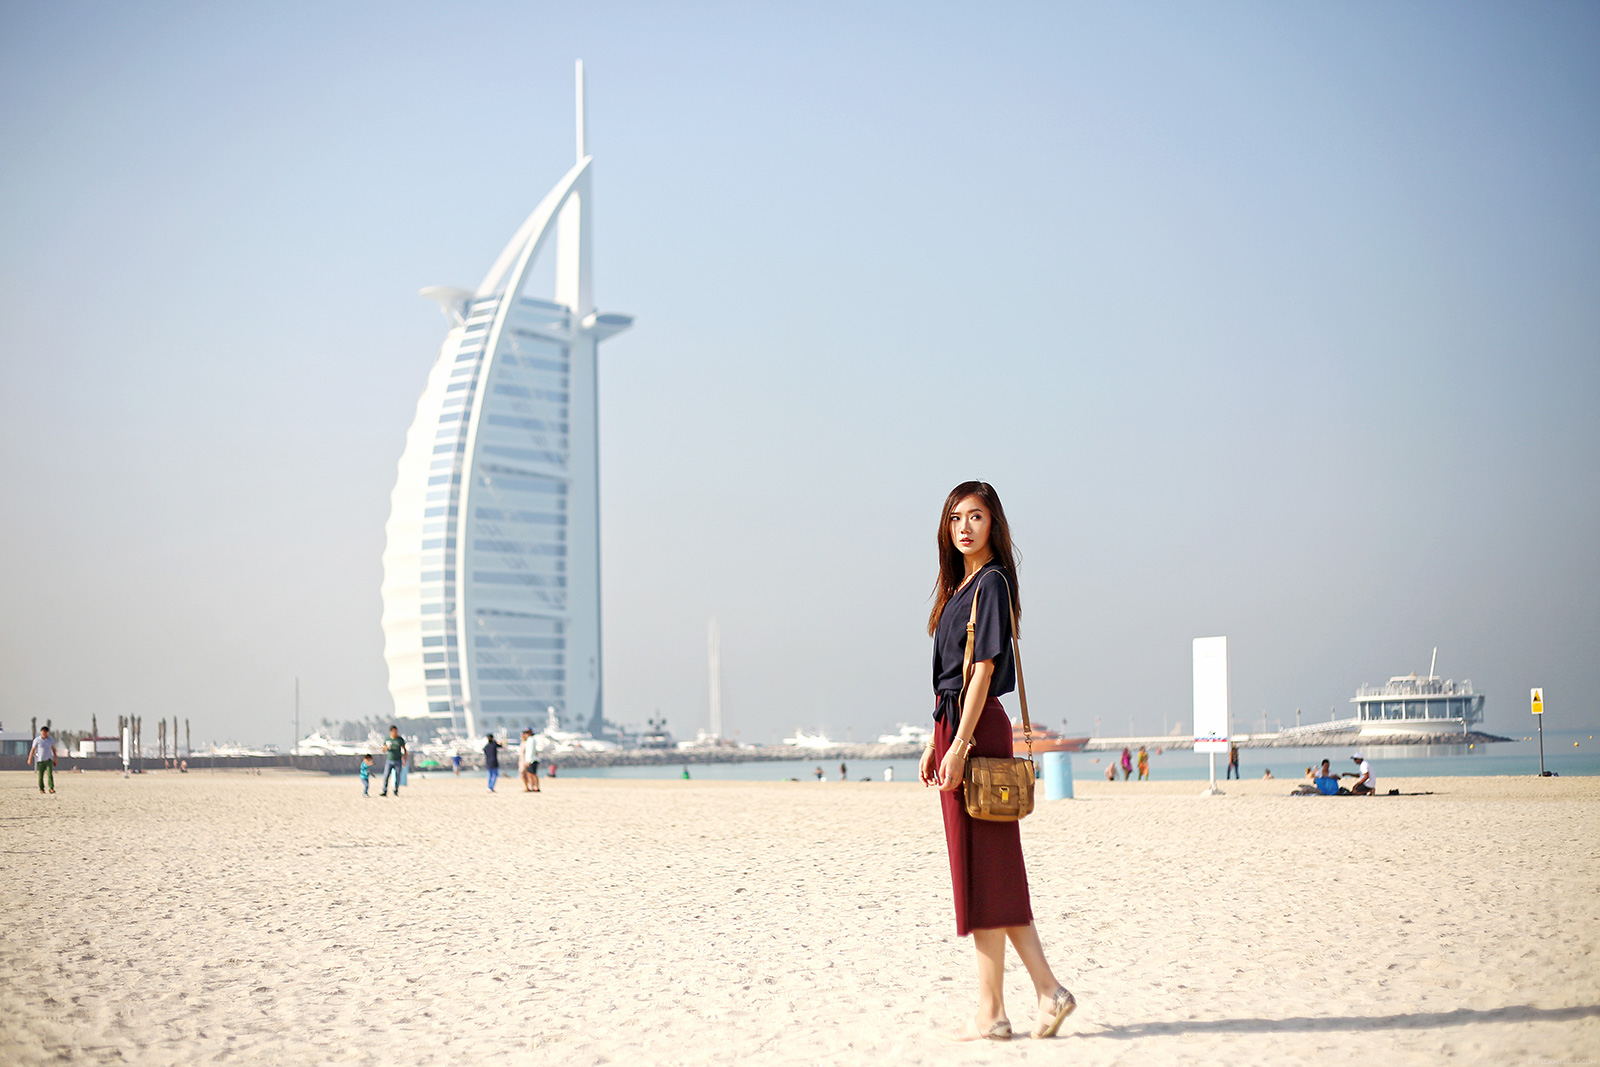 Dubai City Tour, Burj Al Arab, Jumeirah Beach | www.itscamilleco.com